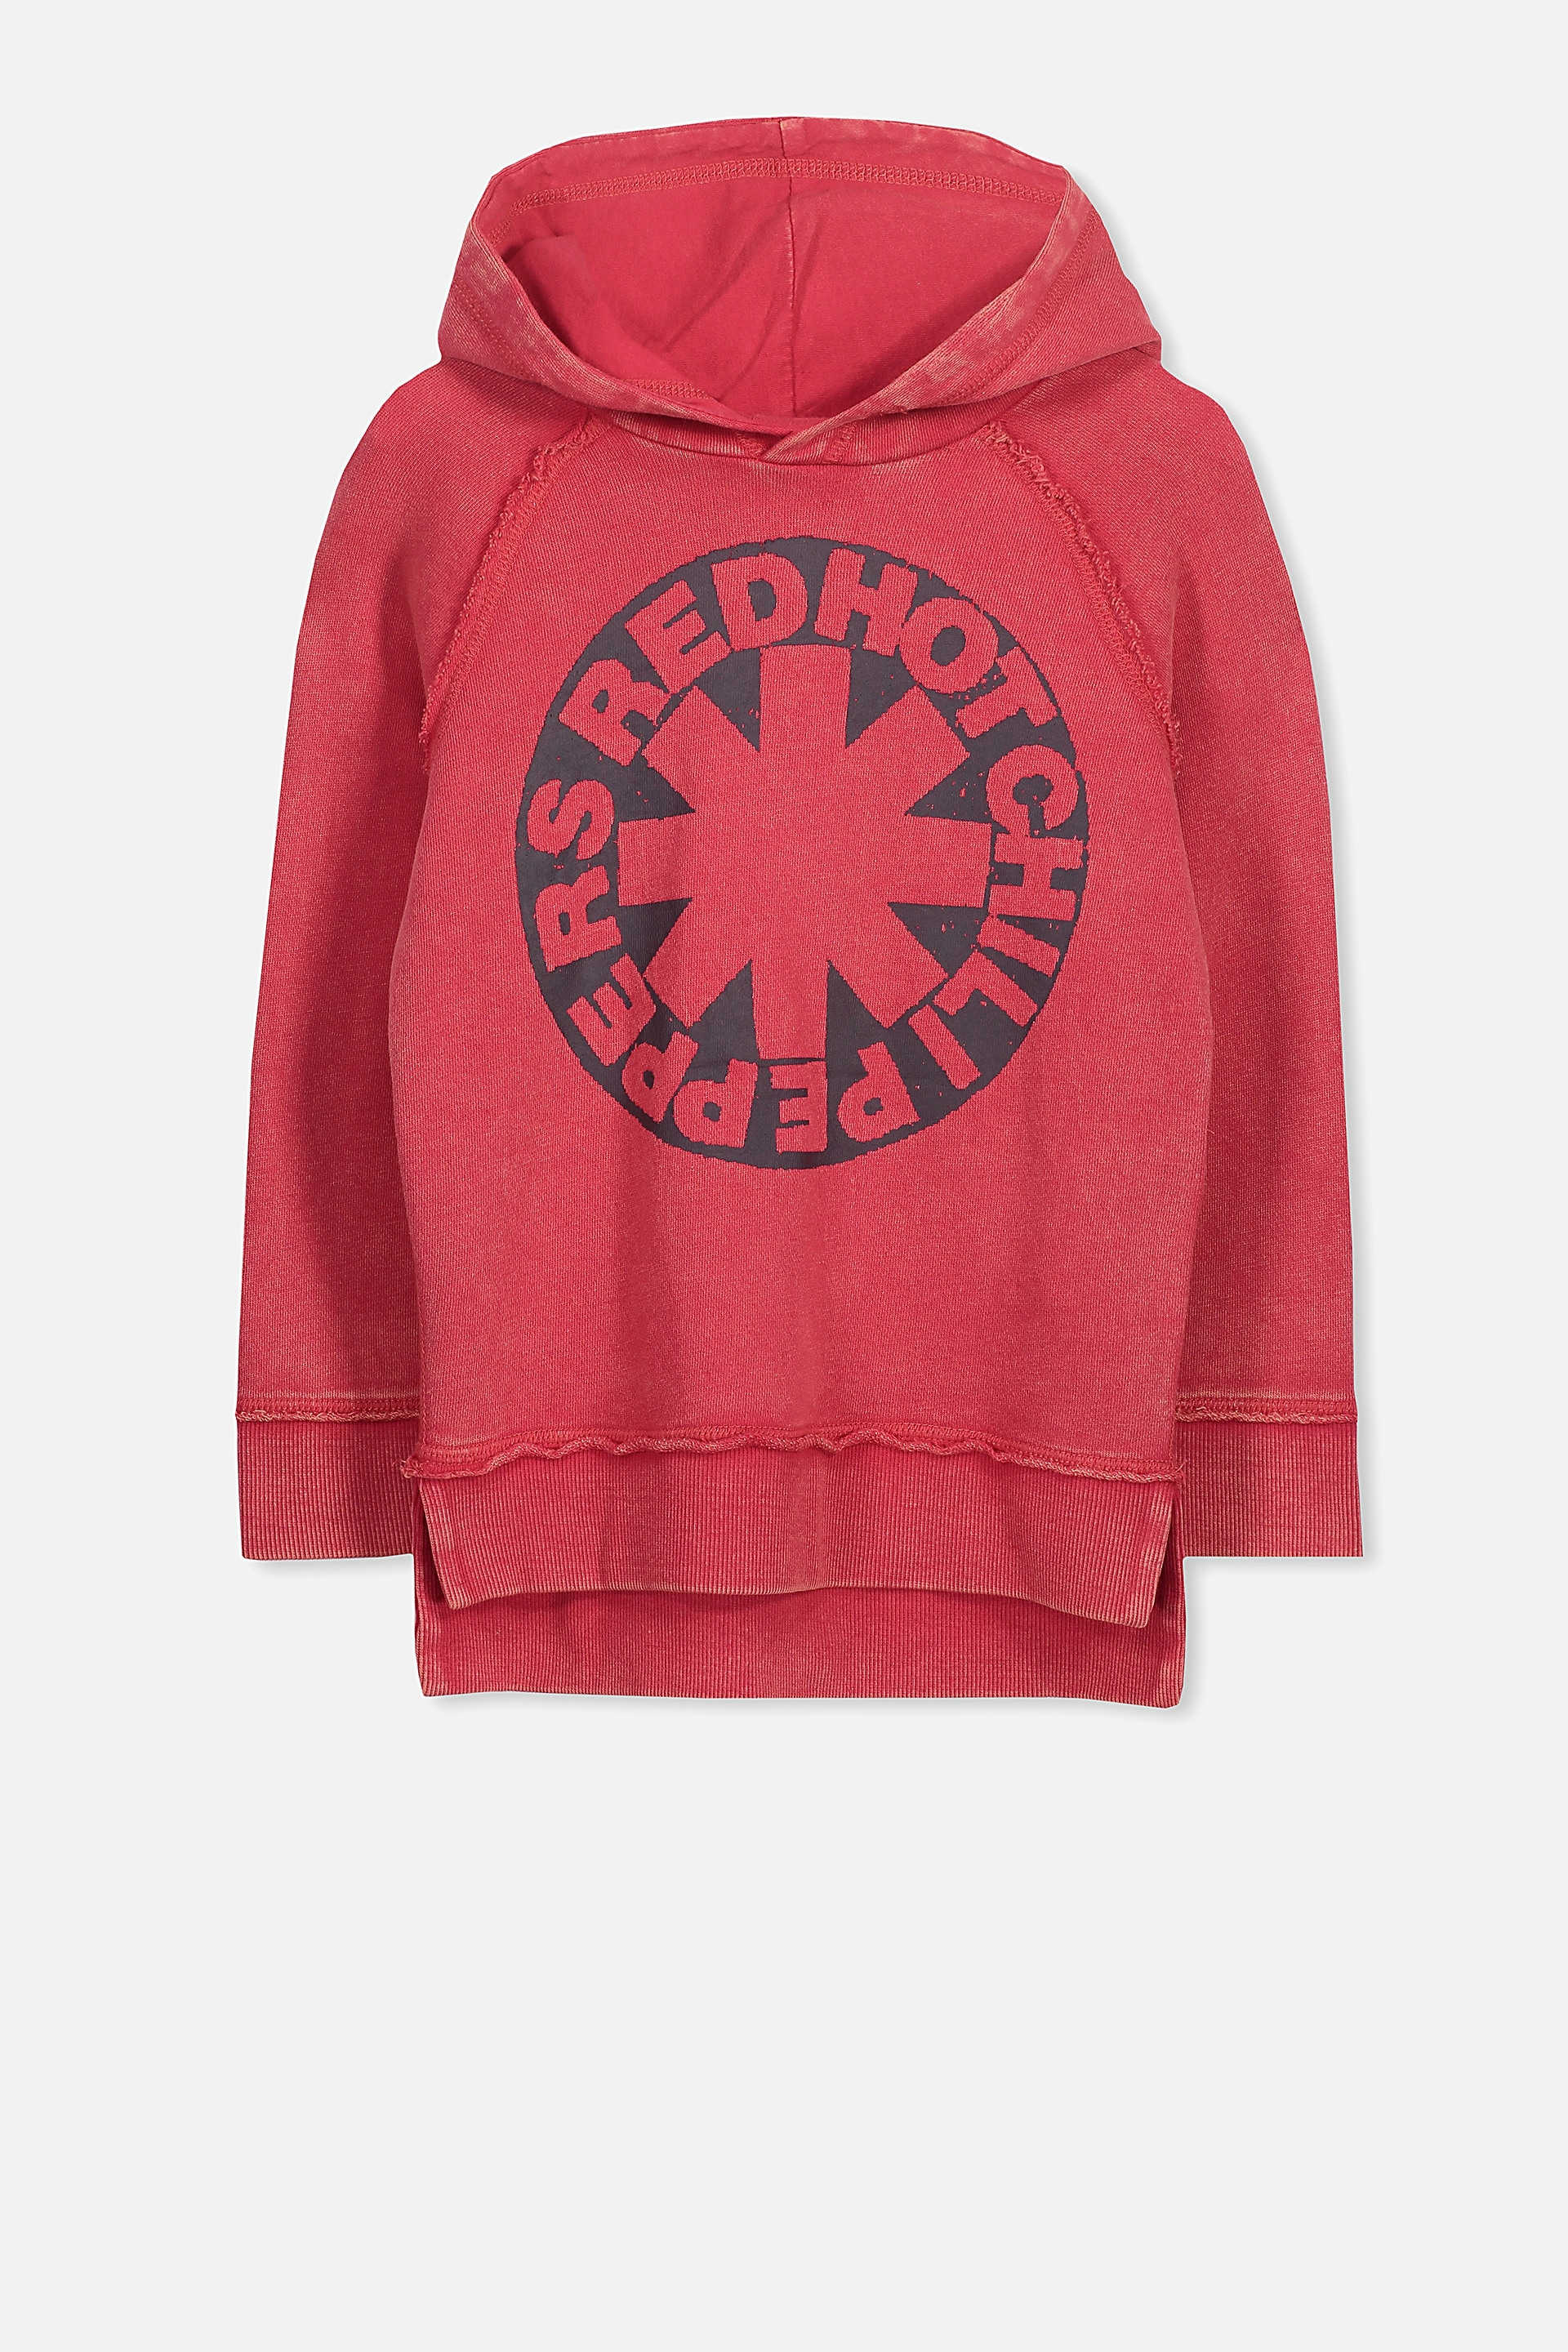 Cotton On Kids - Red Hot Chilli Peppers Fleece Hoodie - Red/rhcp 9352403655631